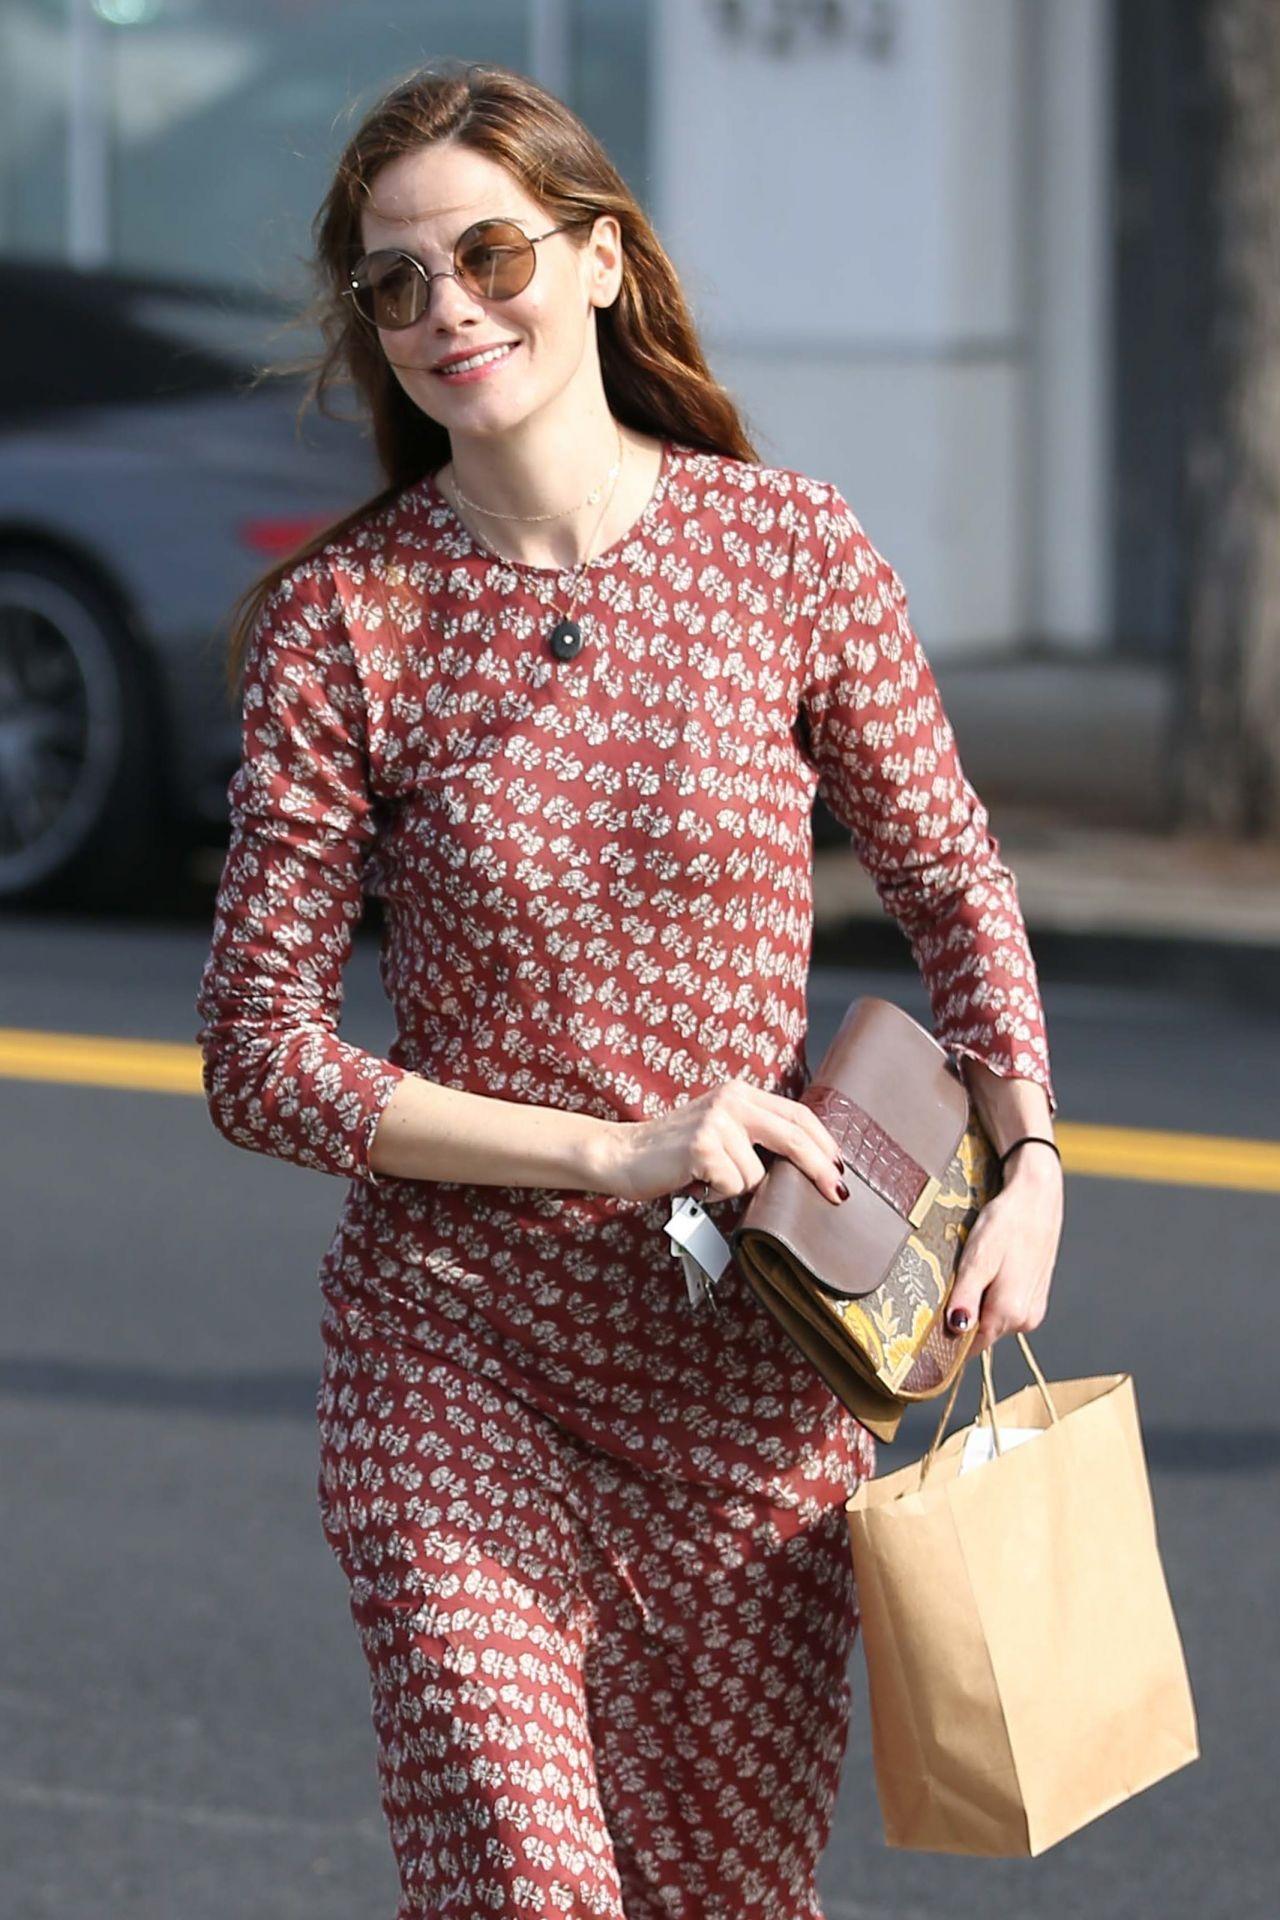 Michelle monaghan shopping in beverly hills naked (88 photo), Instagram Celebrity fotos